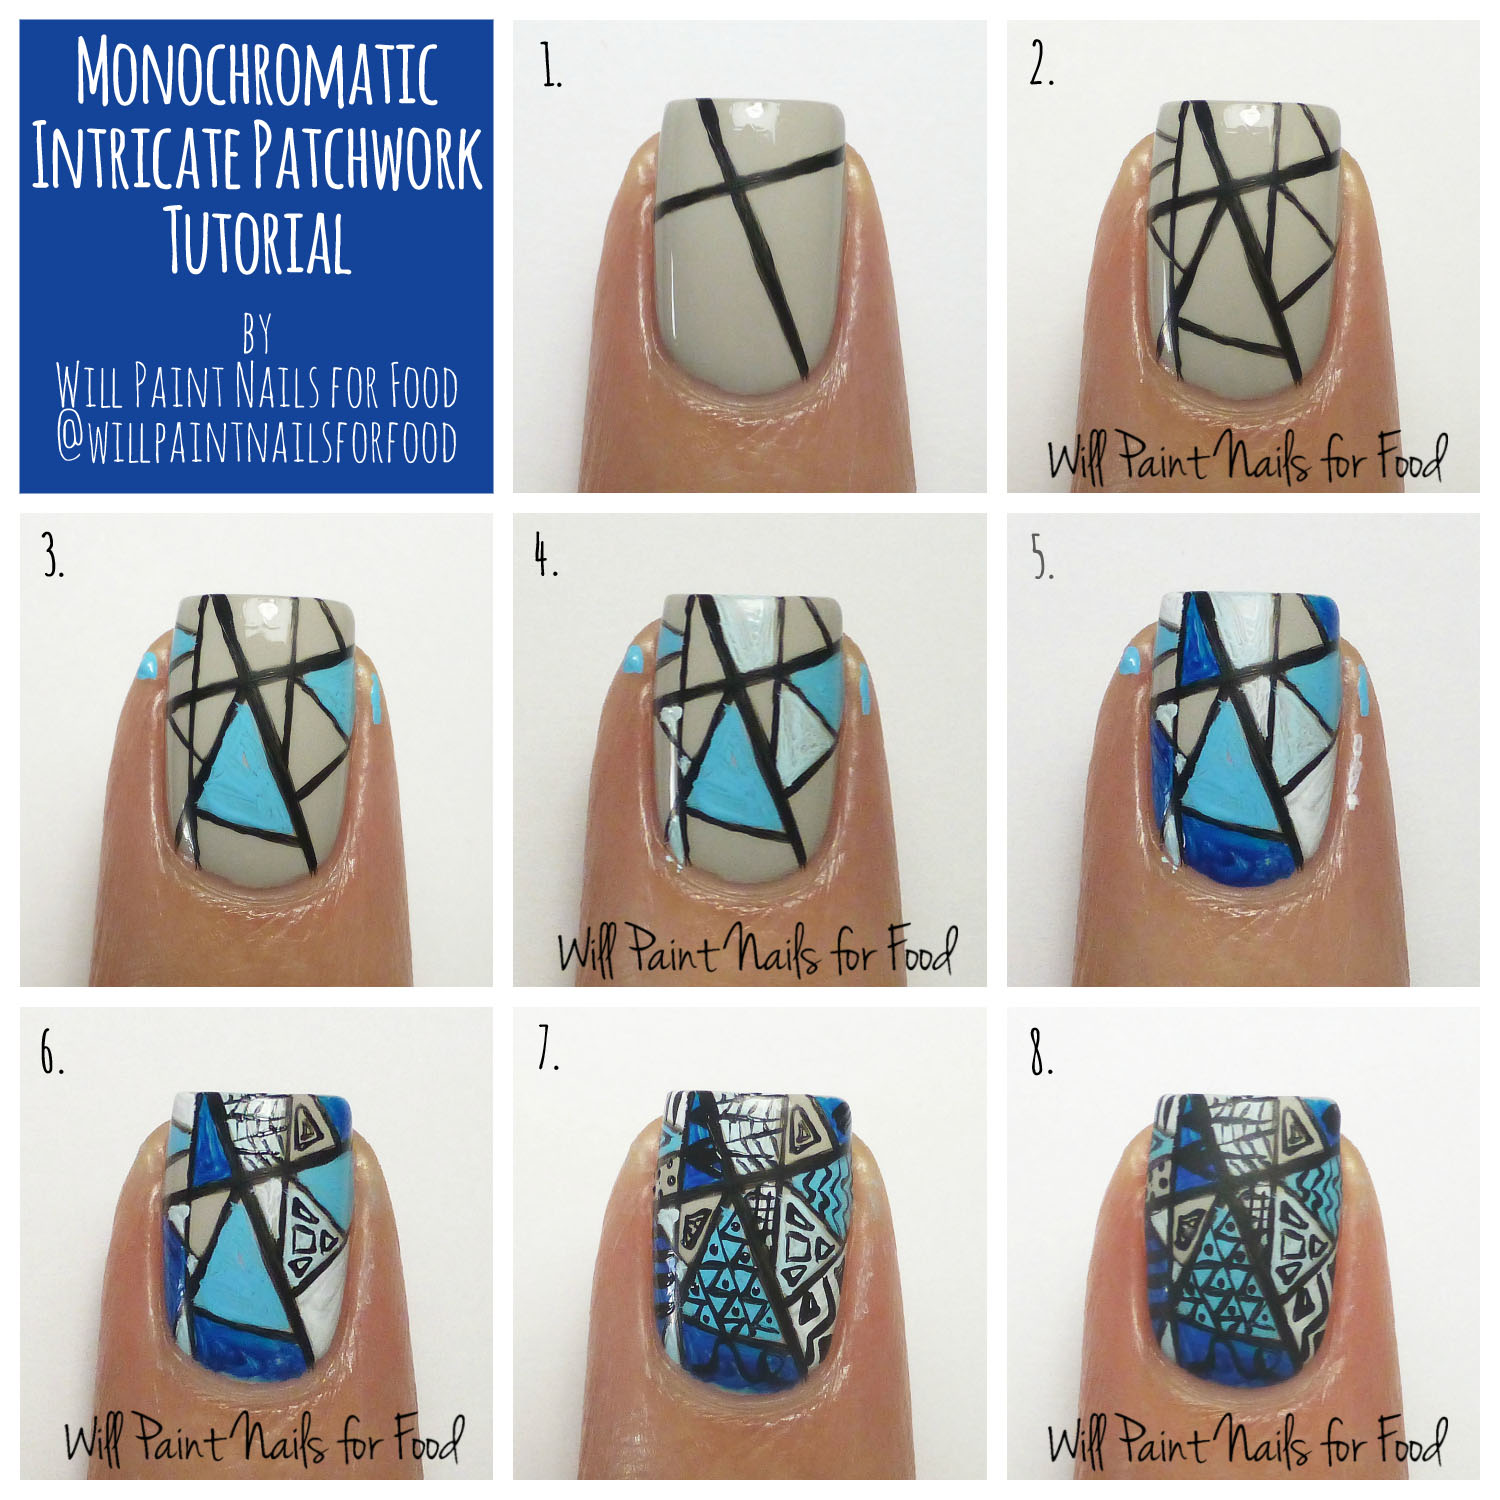 Monochromatic intricate patchwork nail art tutorial